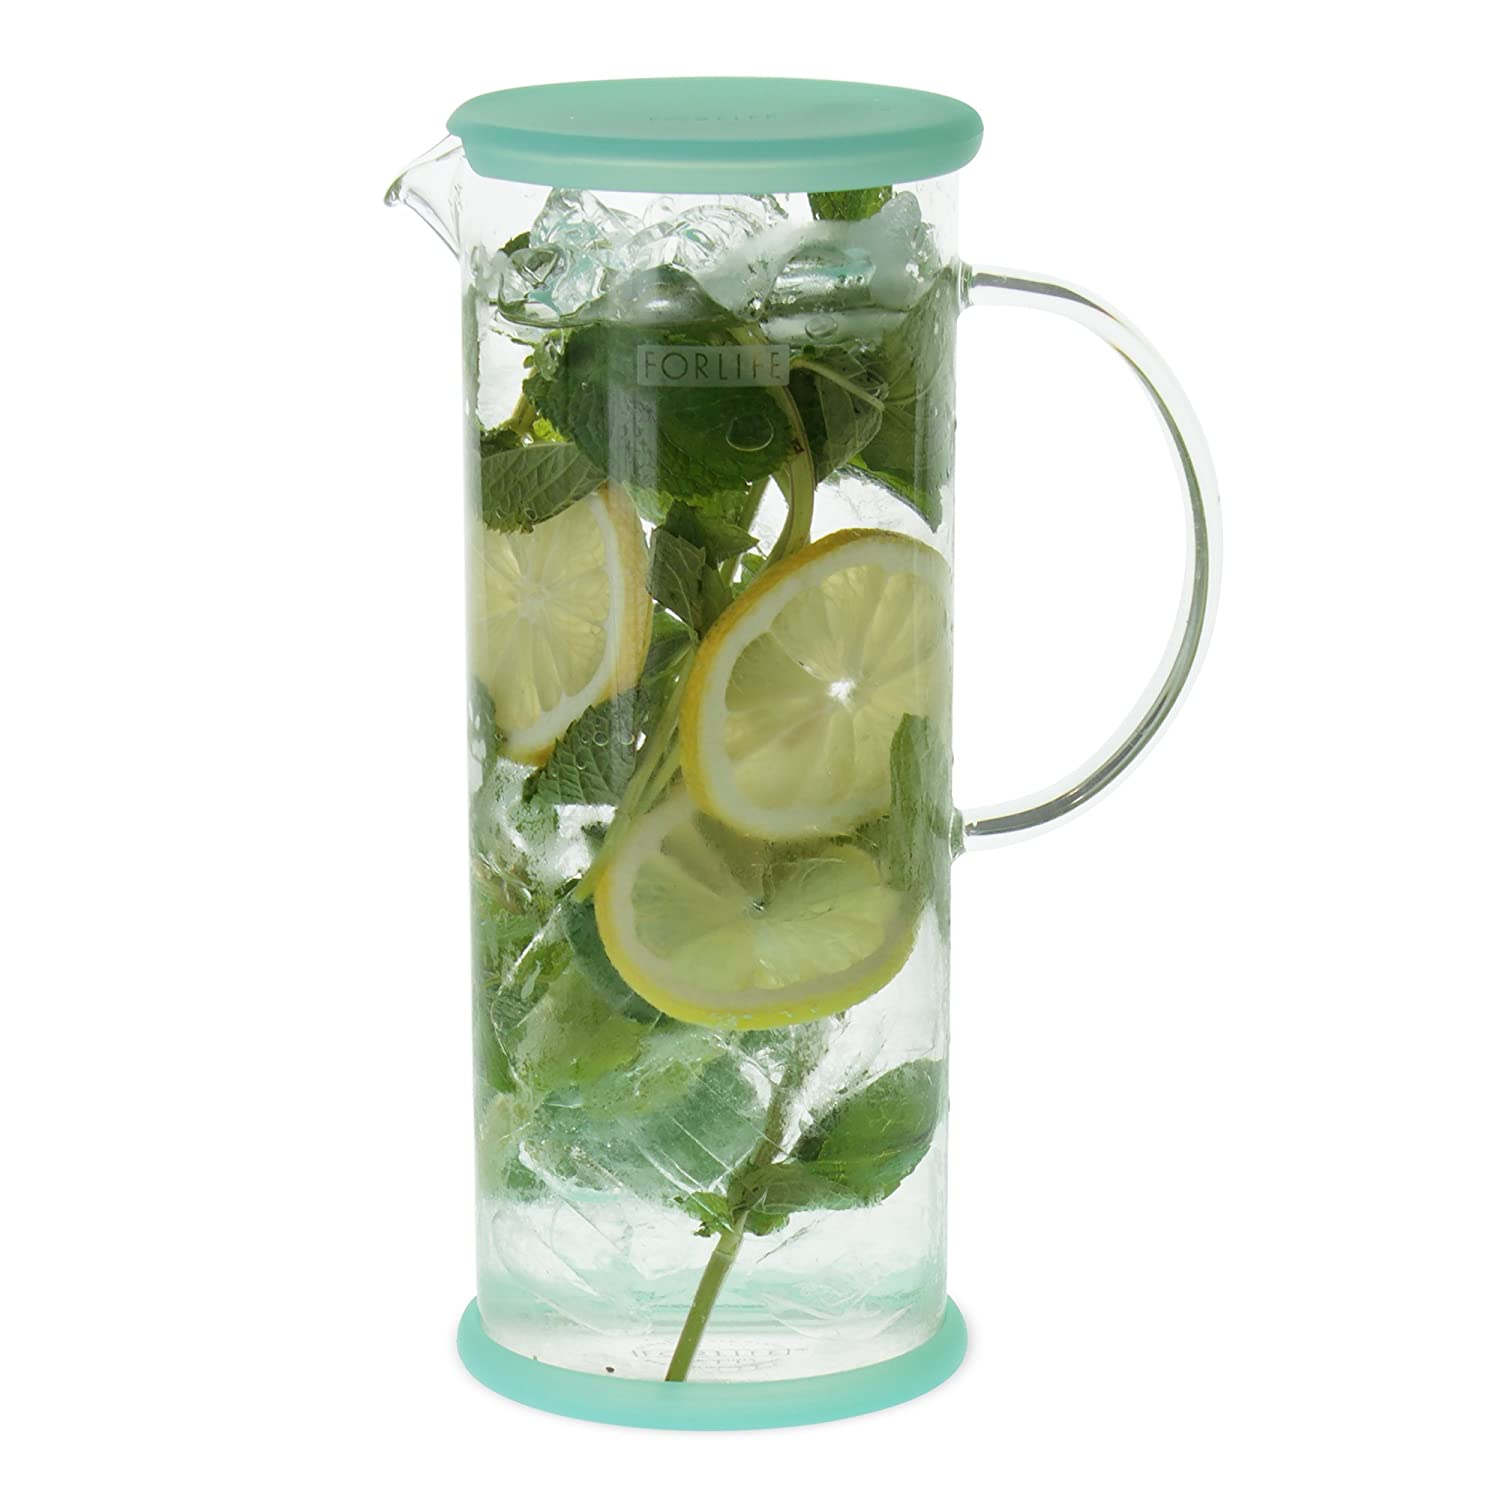 Iced Tea Pitchers Online Shopping For Clothing Shoes